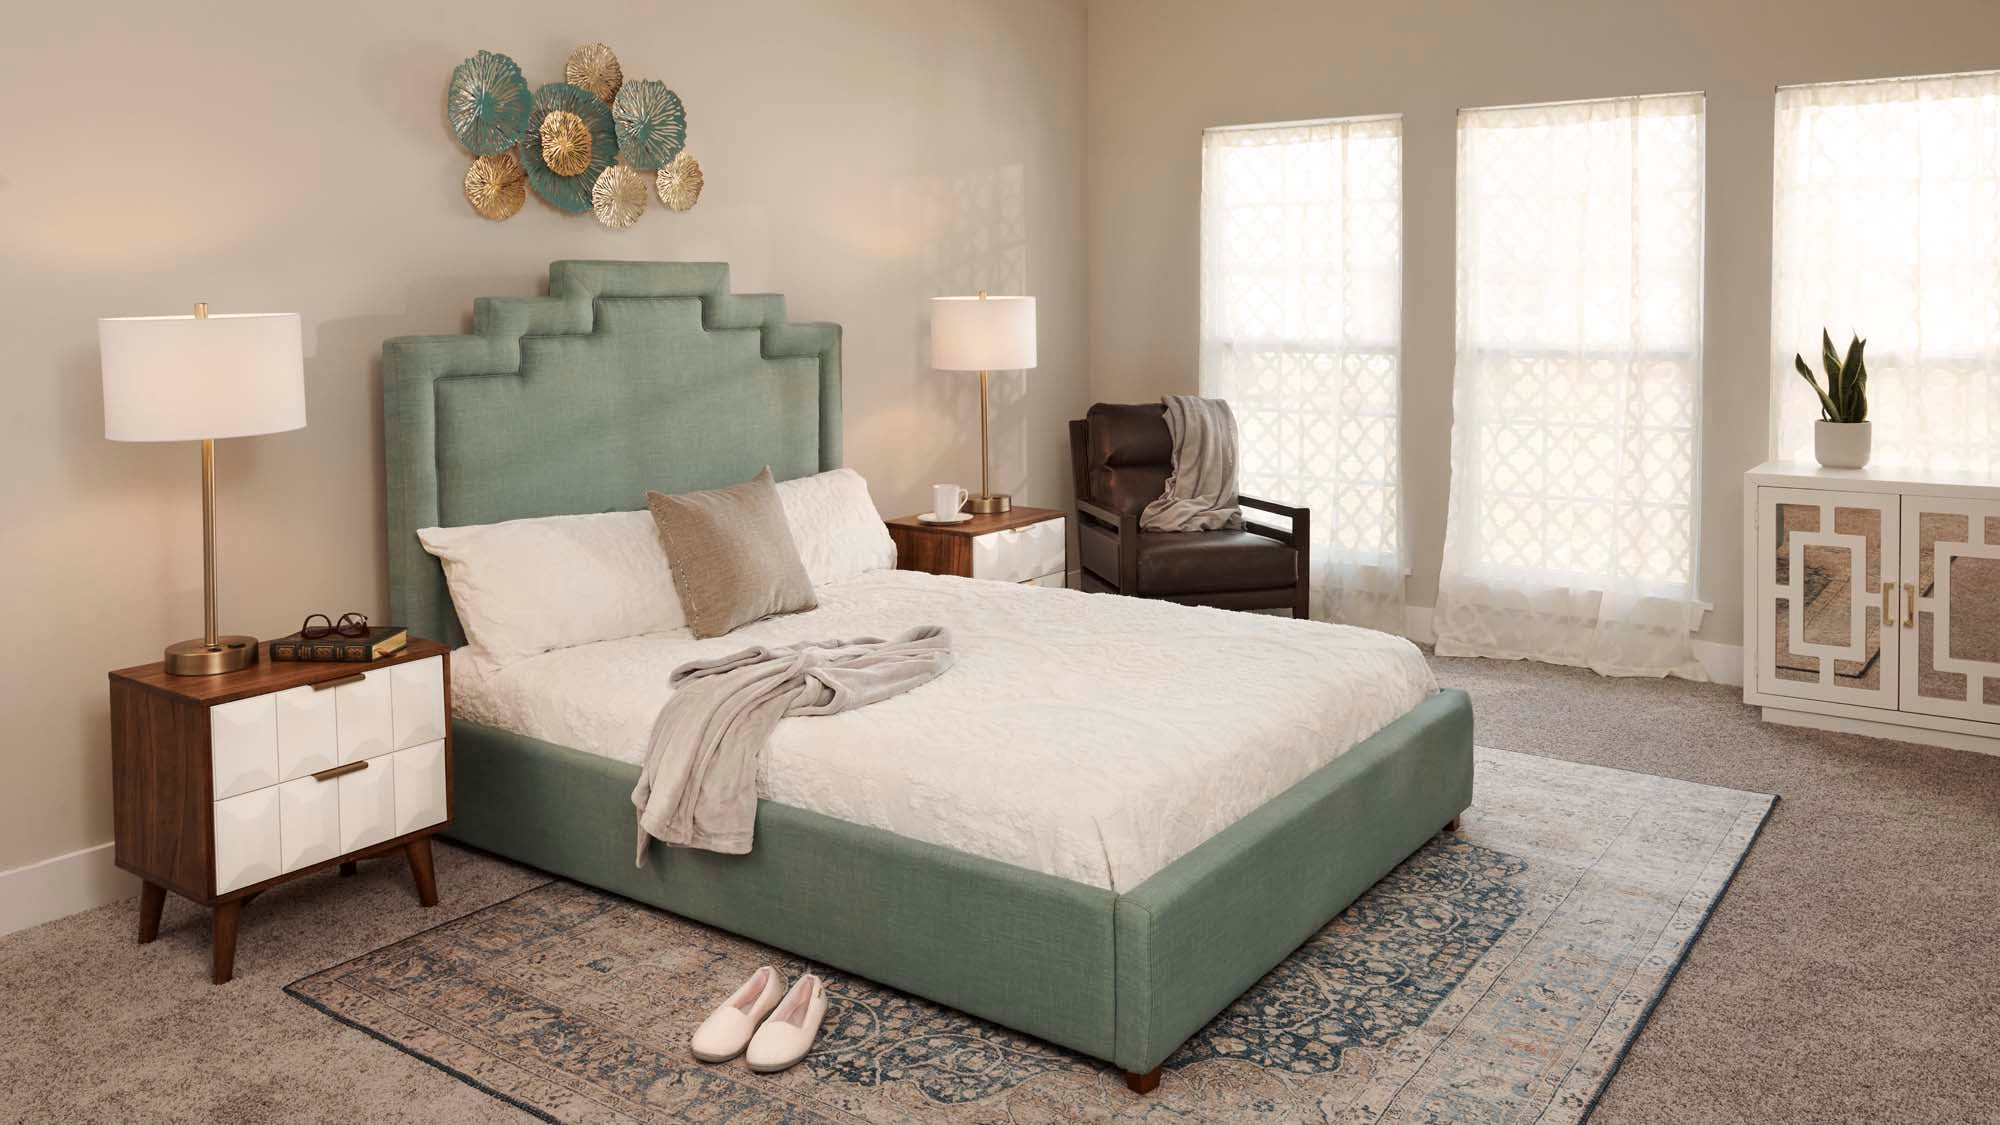 grey rug in bedroom with green bedframe and white comforter